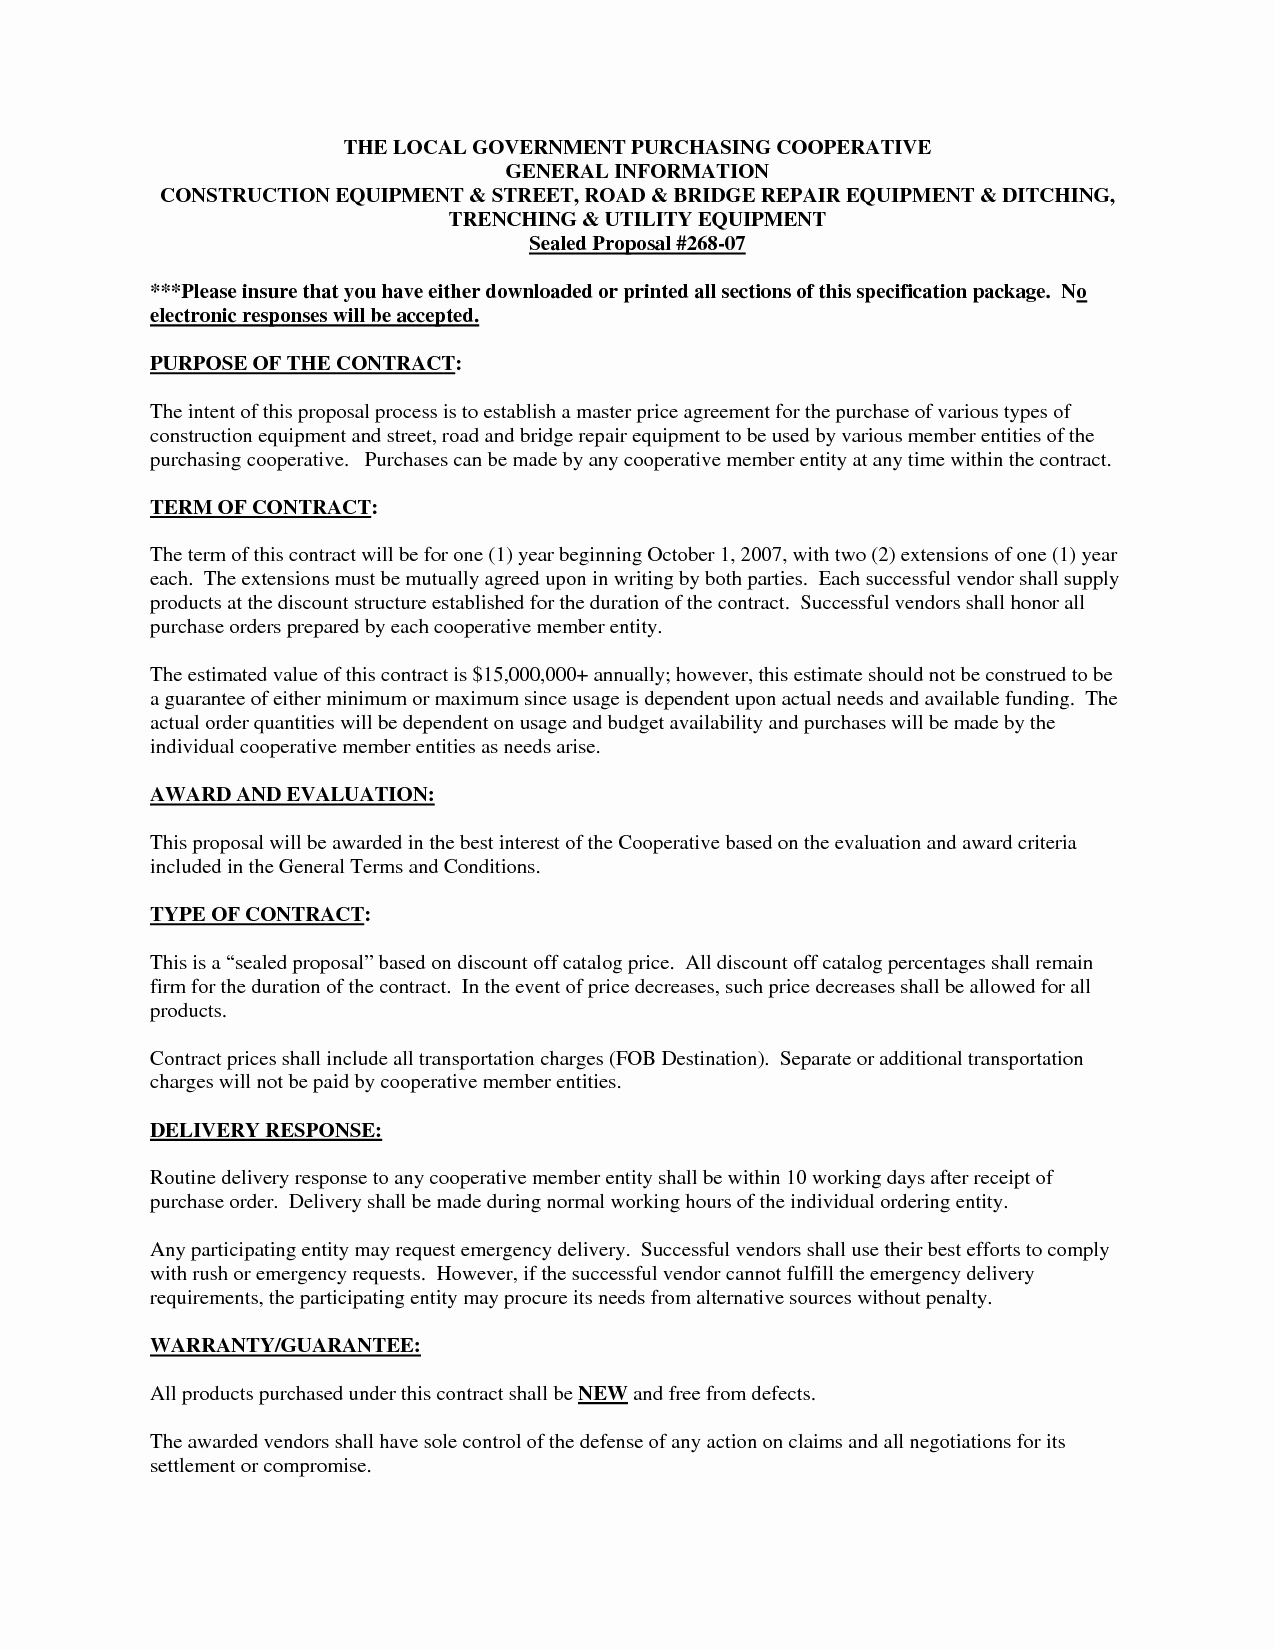 Equipment Purchase Proposal Template Lovely 8 Best Of Equipment Purchase Proposal Template